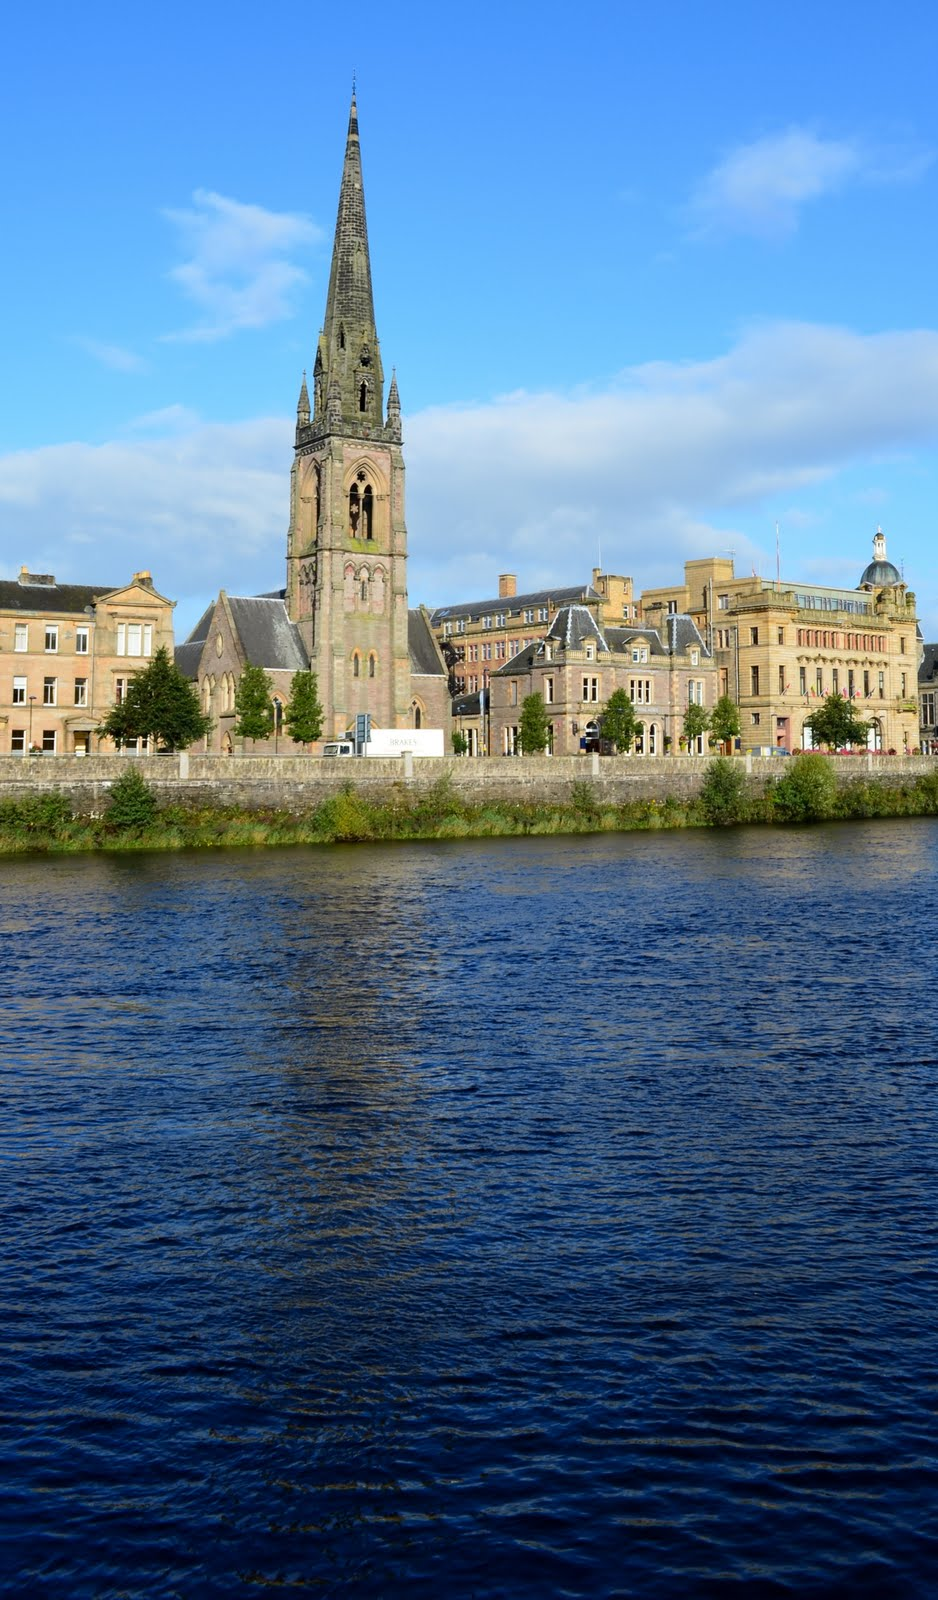 Perth, the Ancient Capital of Scotland |Perthshire Scotland History